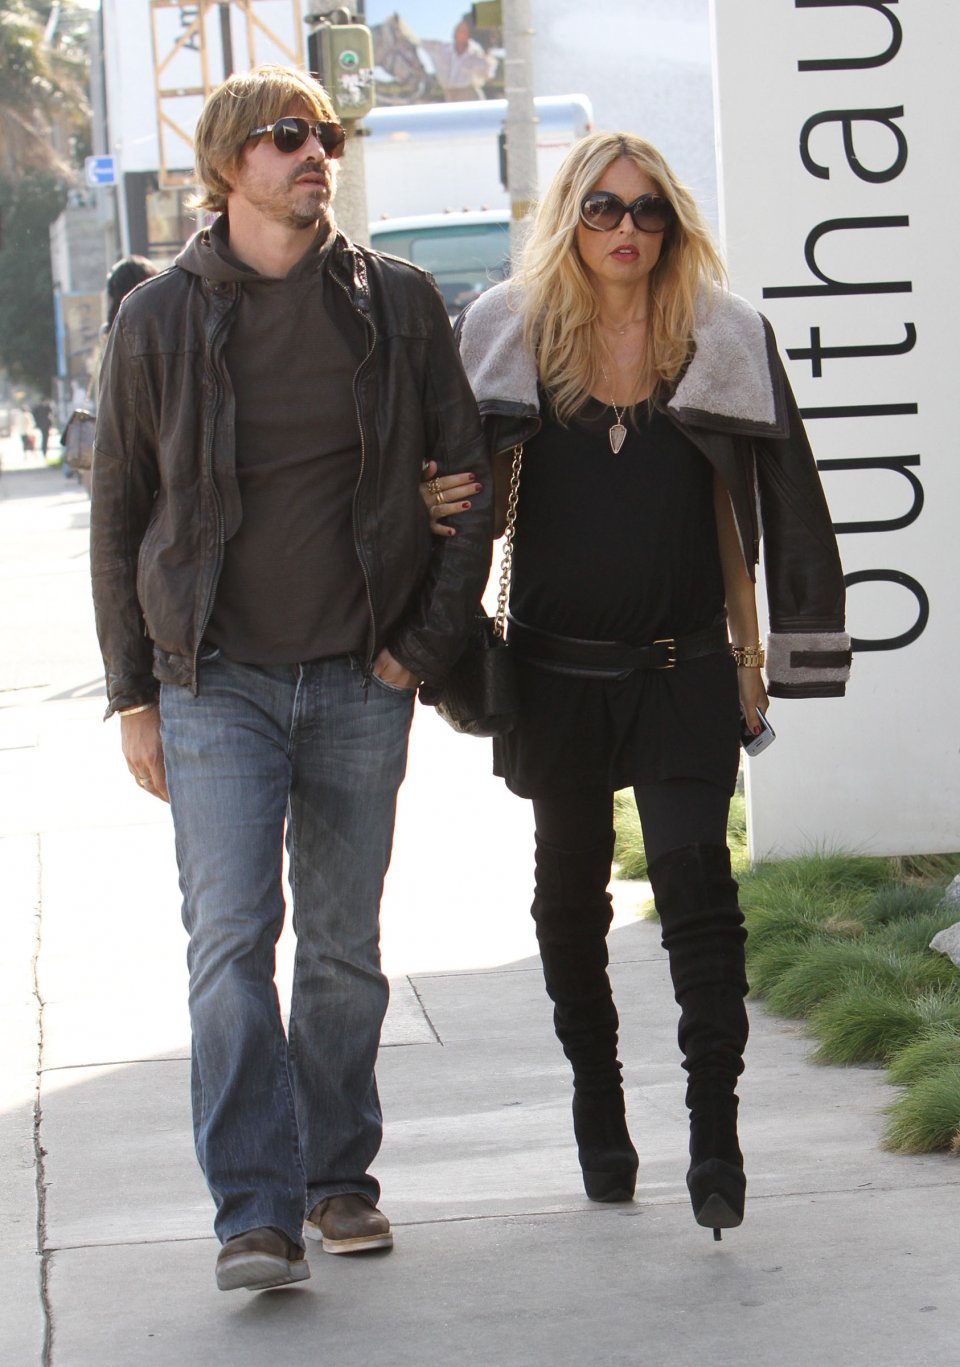 Rachel Zoe Rocking Her Baby Bump In Sky High Boots